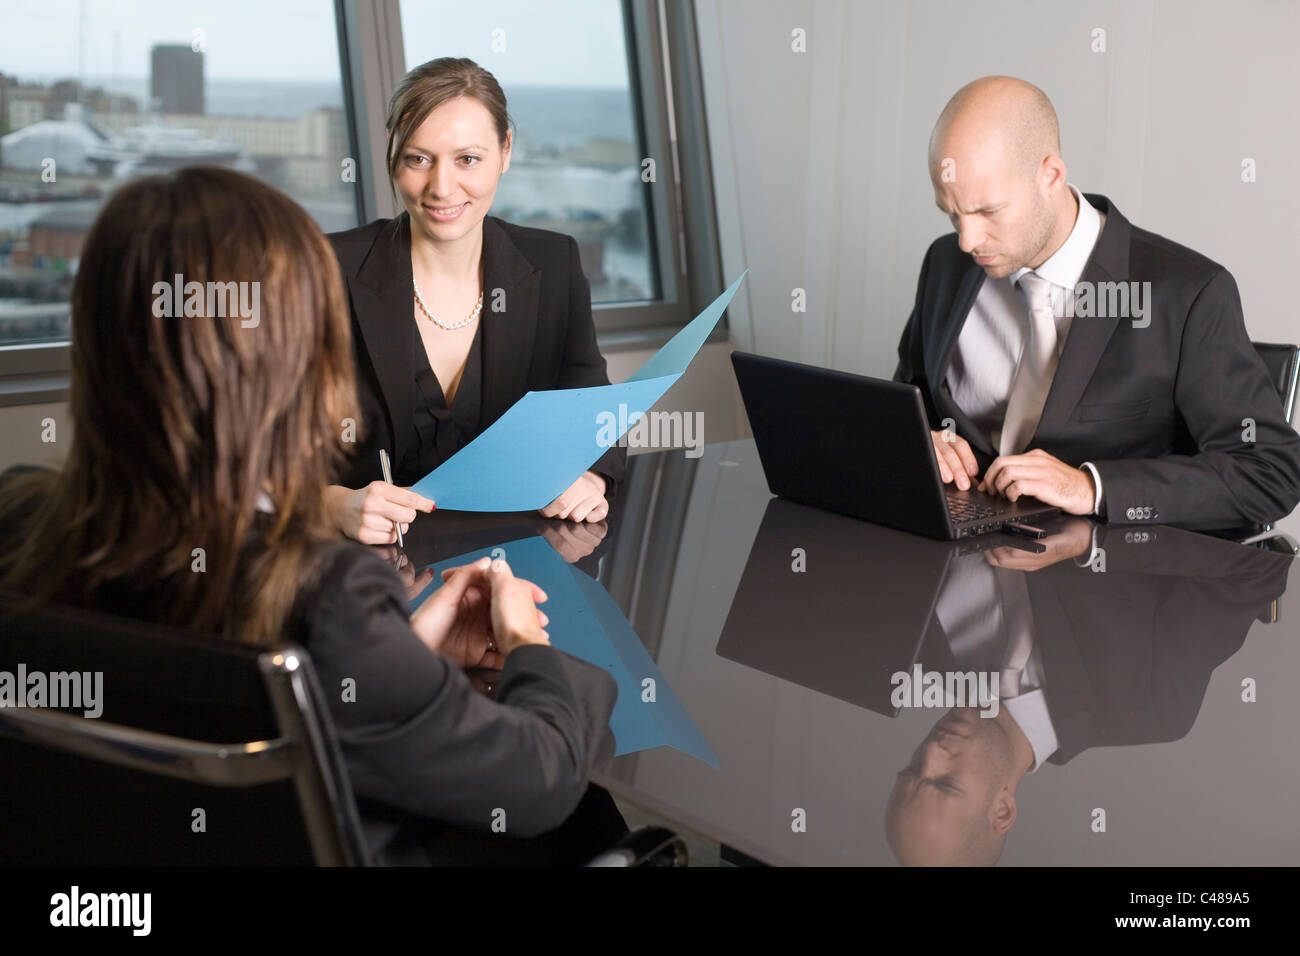 Three persons during a interview in a skyline office - Stock Image